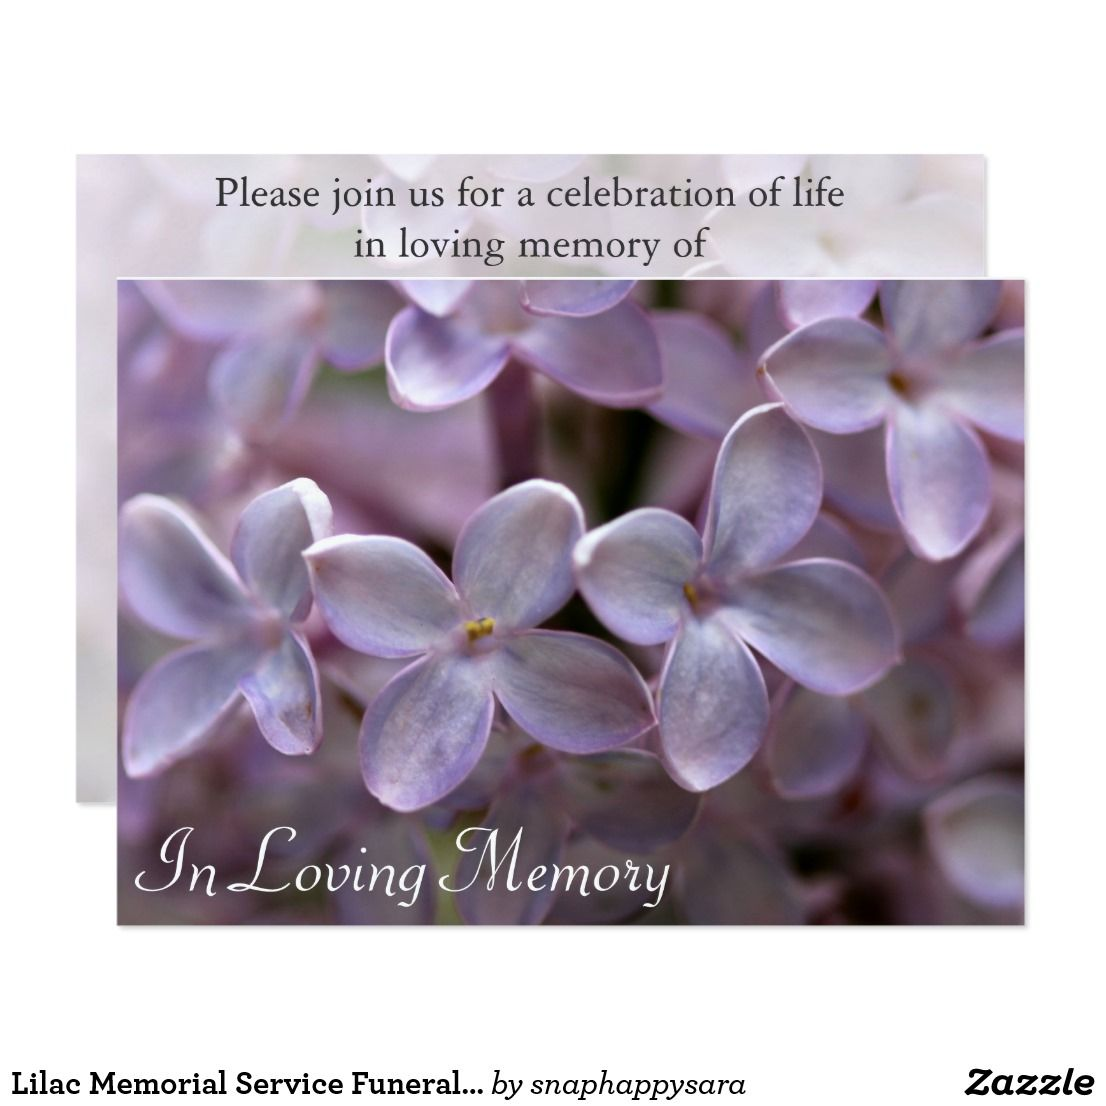 Lilac memorial service funeral invitation funeral and lilacs lilac memorial service funeral invitation stopboris Gallery